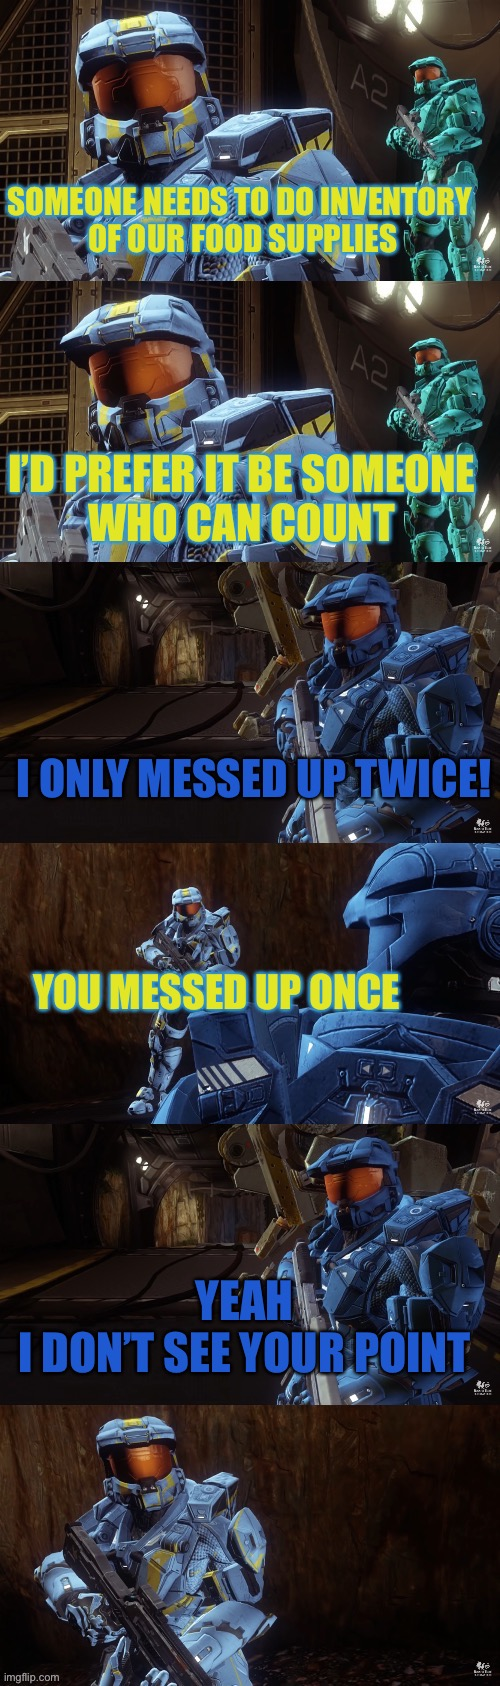 I don't see your point |  SOMEONE NEEDS TO DO INVENTORY  OF OUR FOOD SUPPLIES; I'D PREFER IT BE SOMEONE  WHO CAN COUNT; I ONLY MESSED UP TWICE! YOU MESSED UP ONCE; YEAH  I DON'T SEE YOUR POINT | image tagged in wash and caboose,red vs blue,rvb,agent washington,caboose,i dont see your point | made w/ Imgflip meme maker